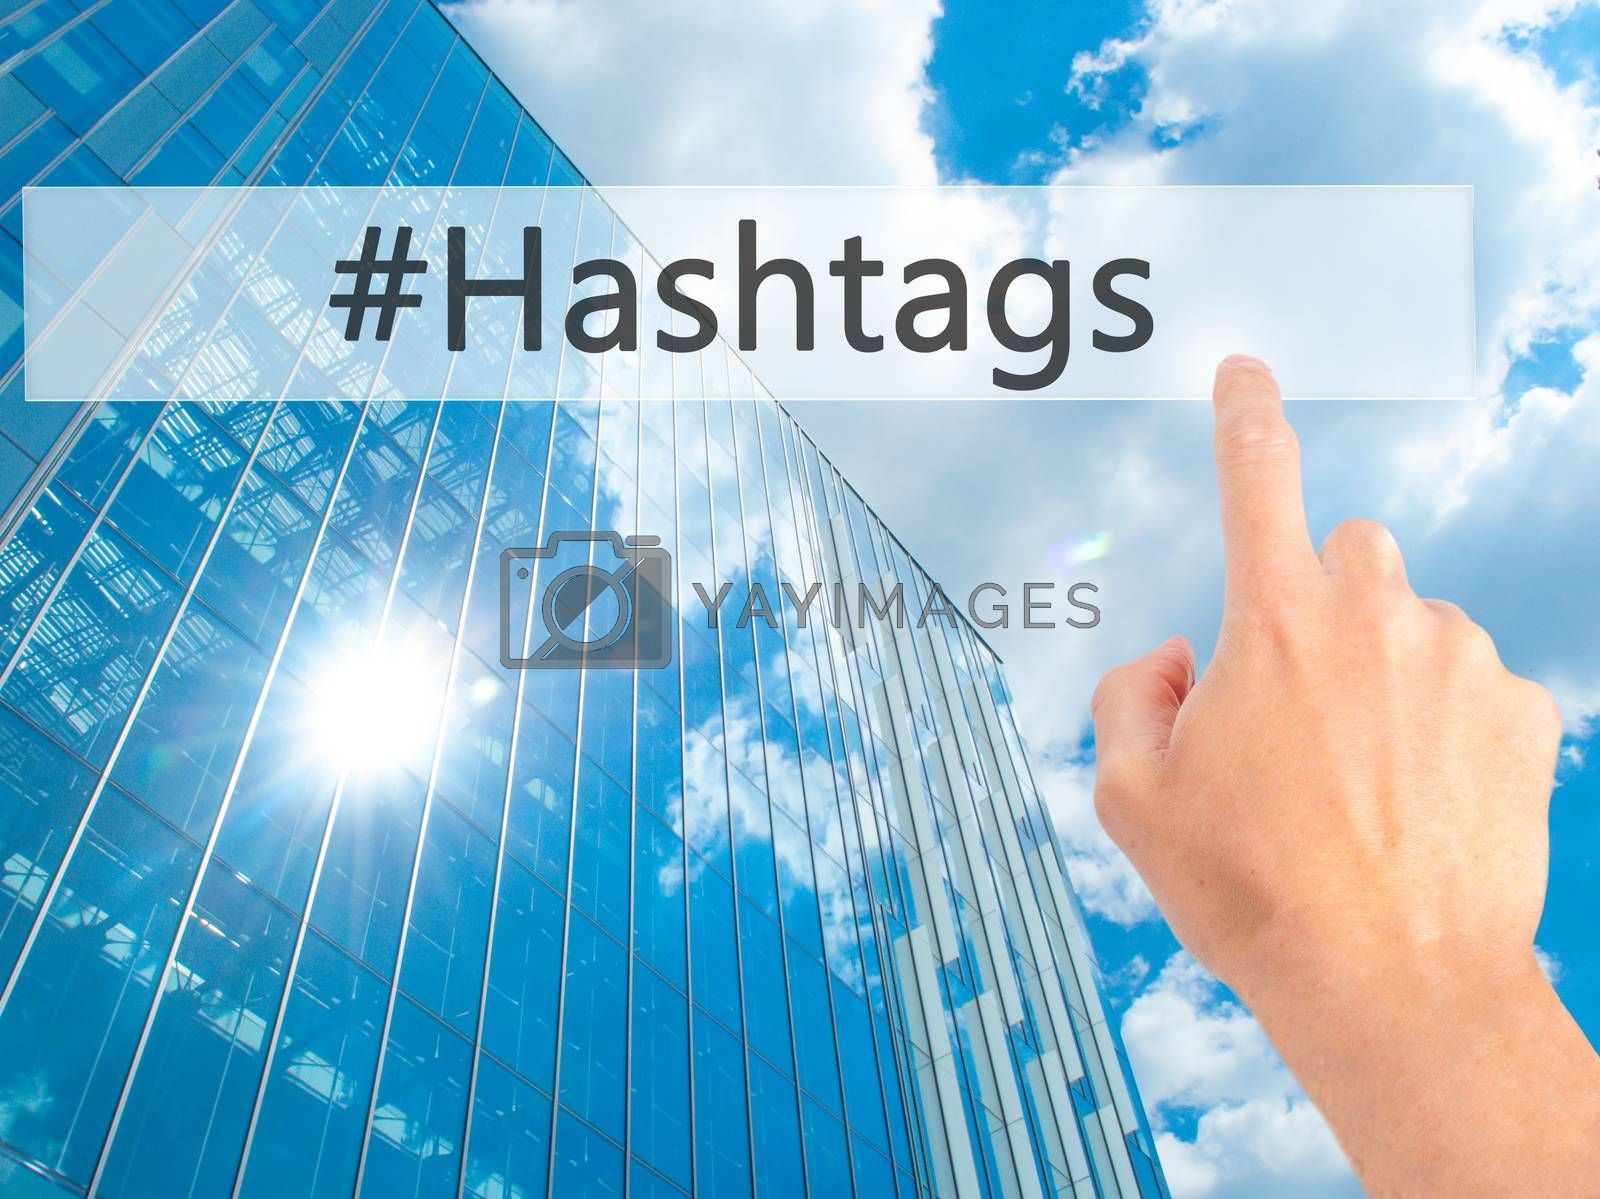 #Hashtags - Hand pressing a button on blurred background concept by netsay.net